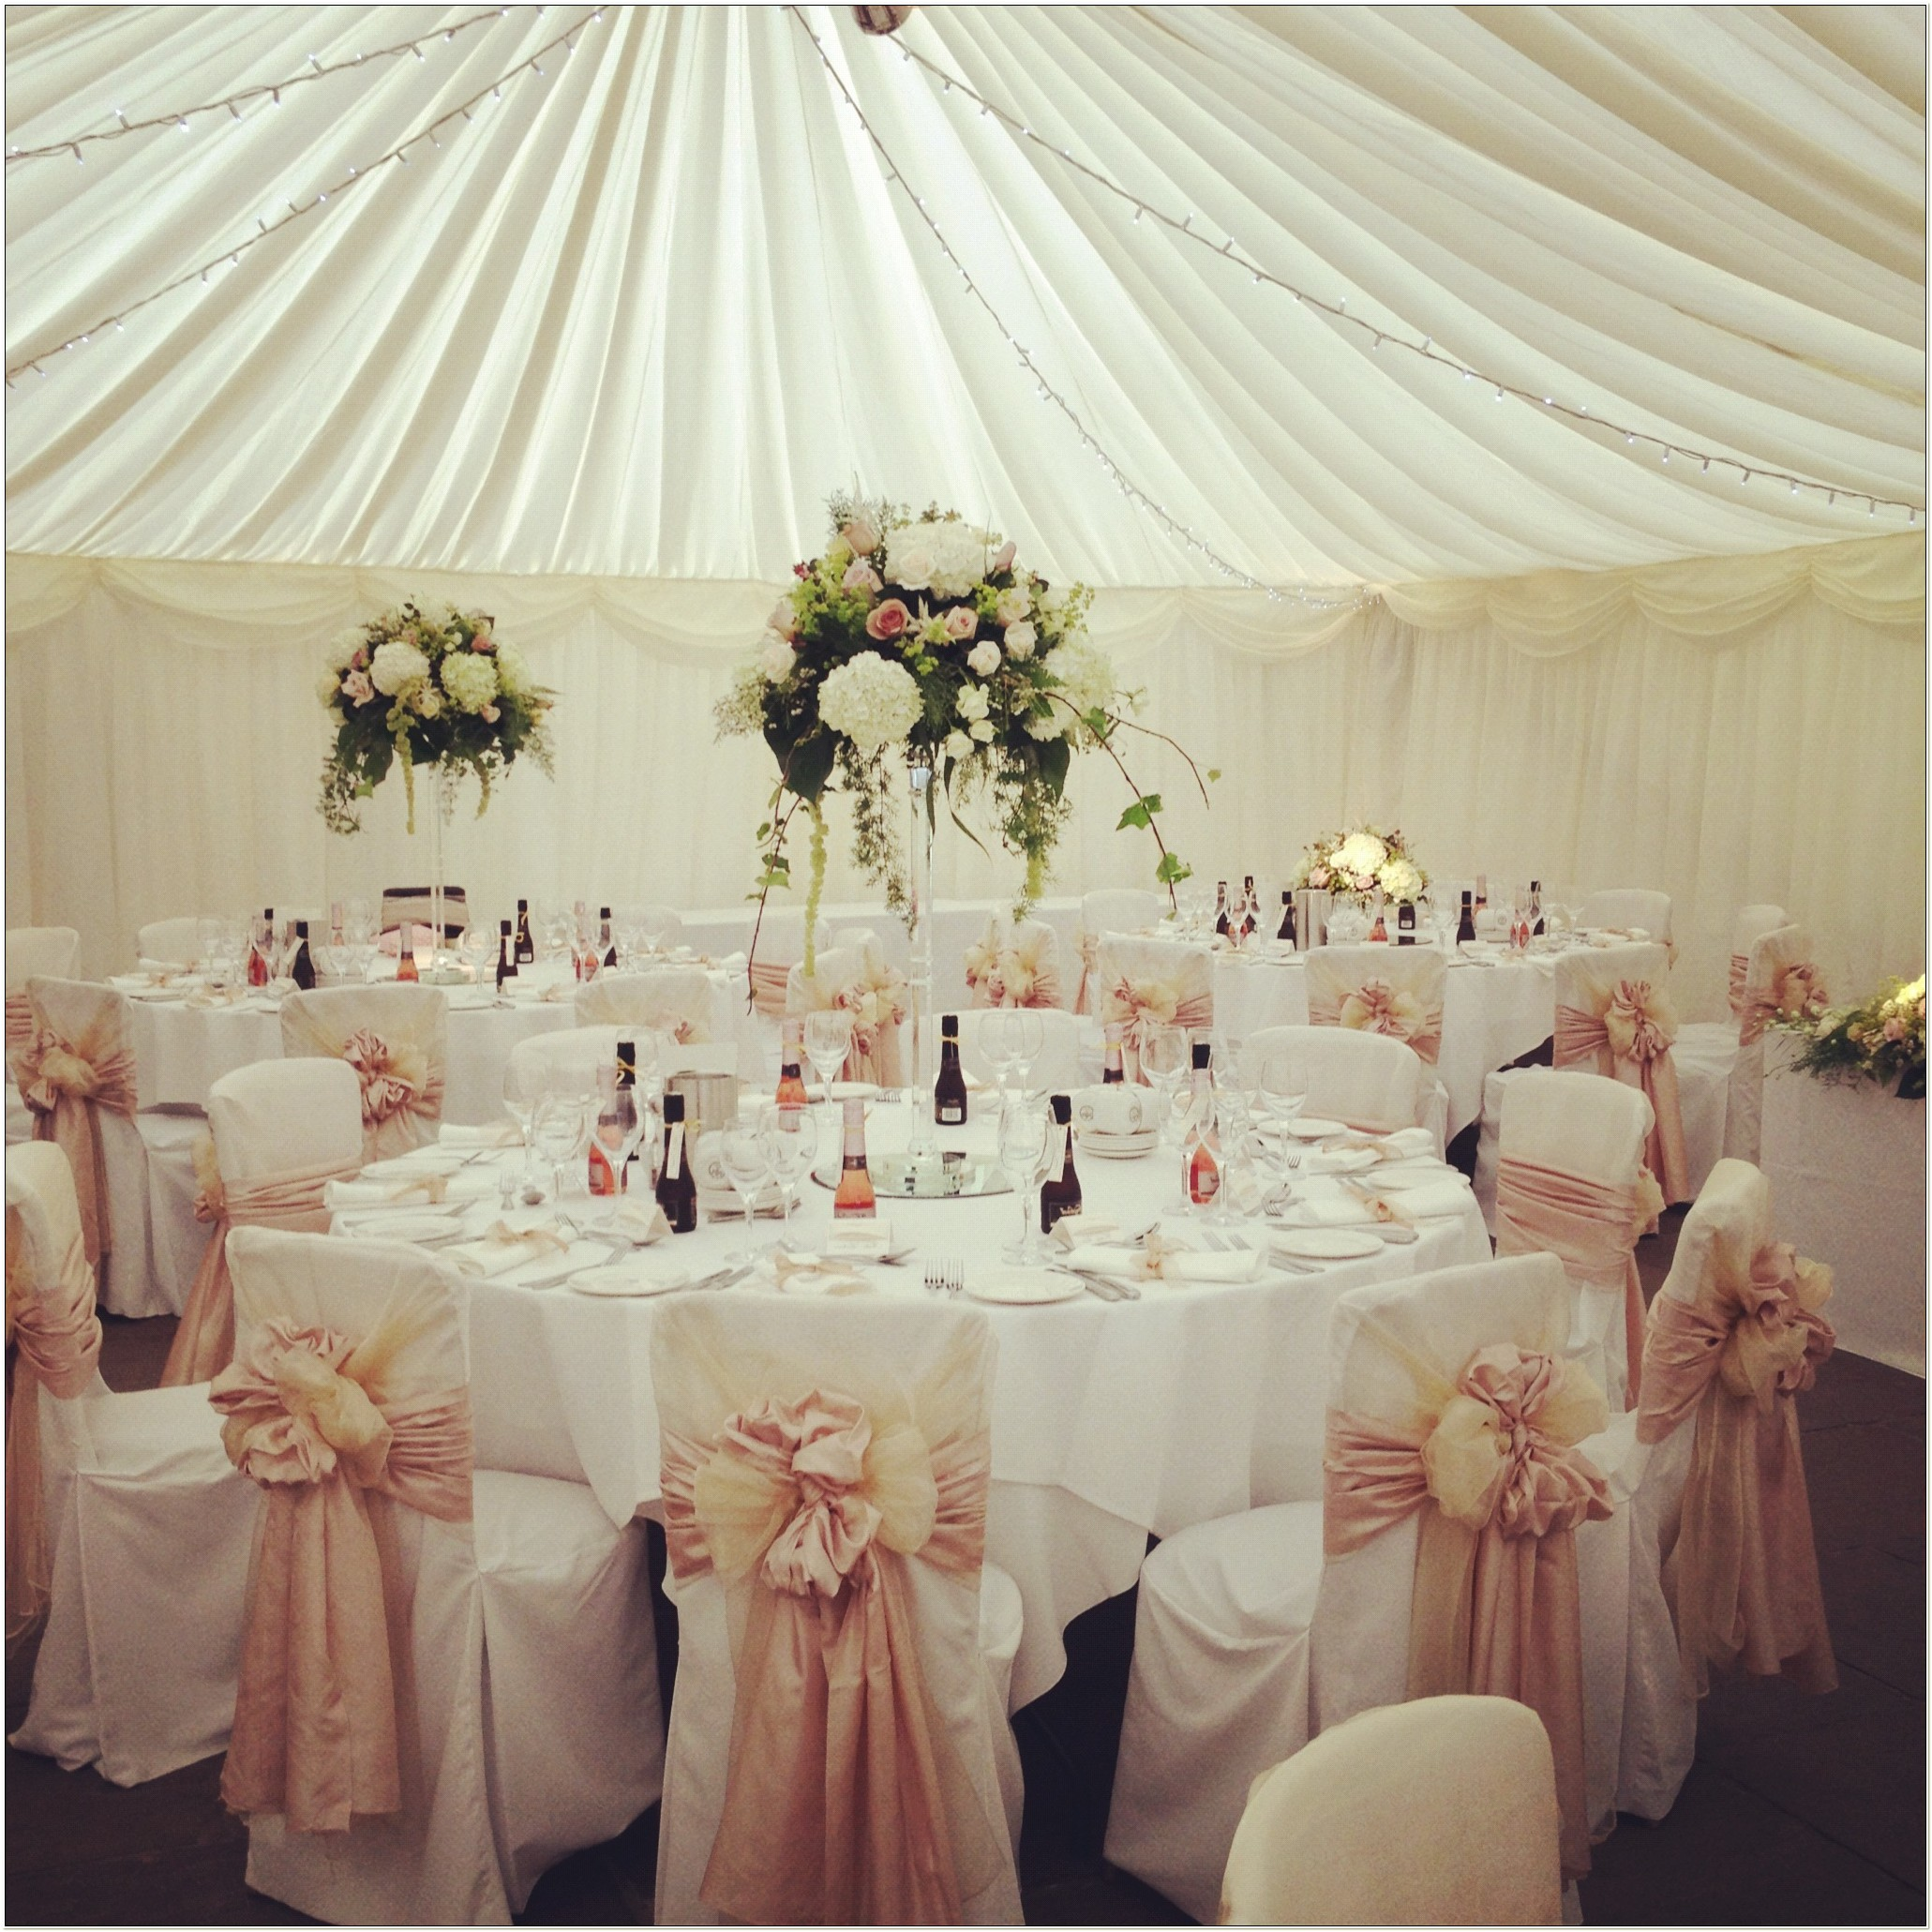 Sashes For Wedding Chair Covers